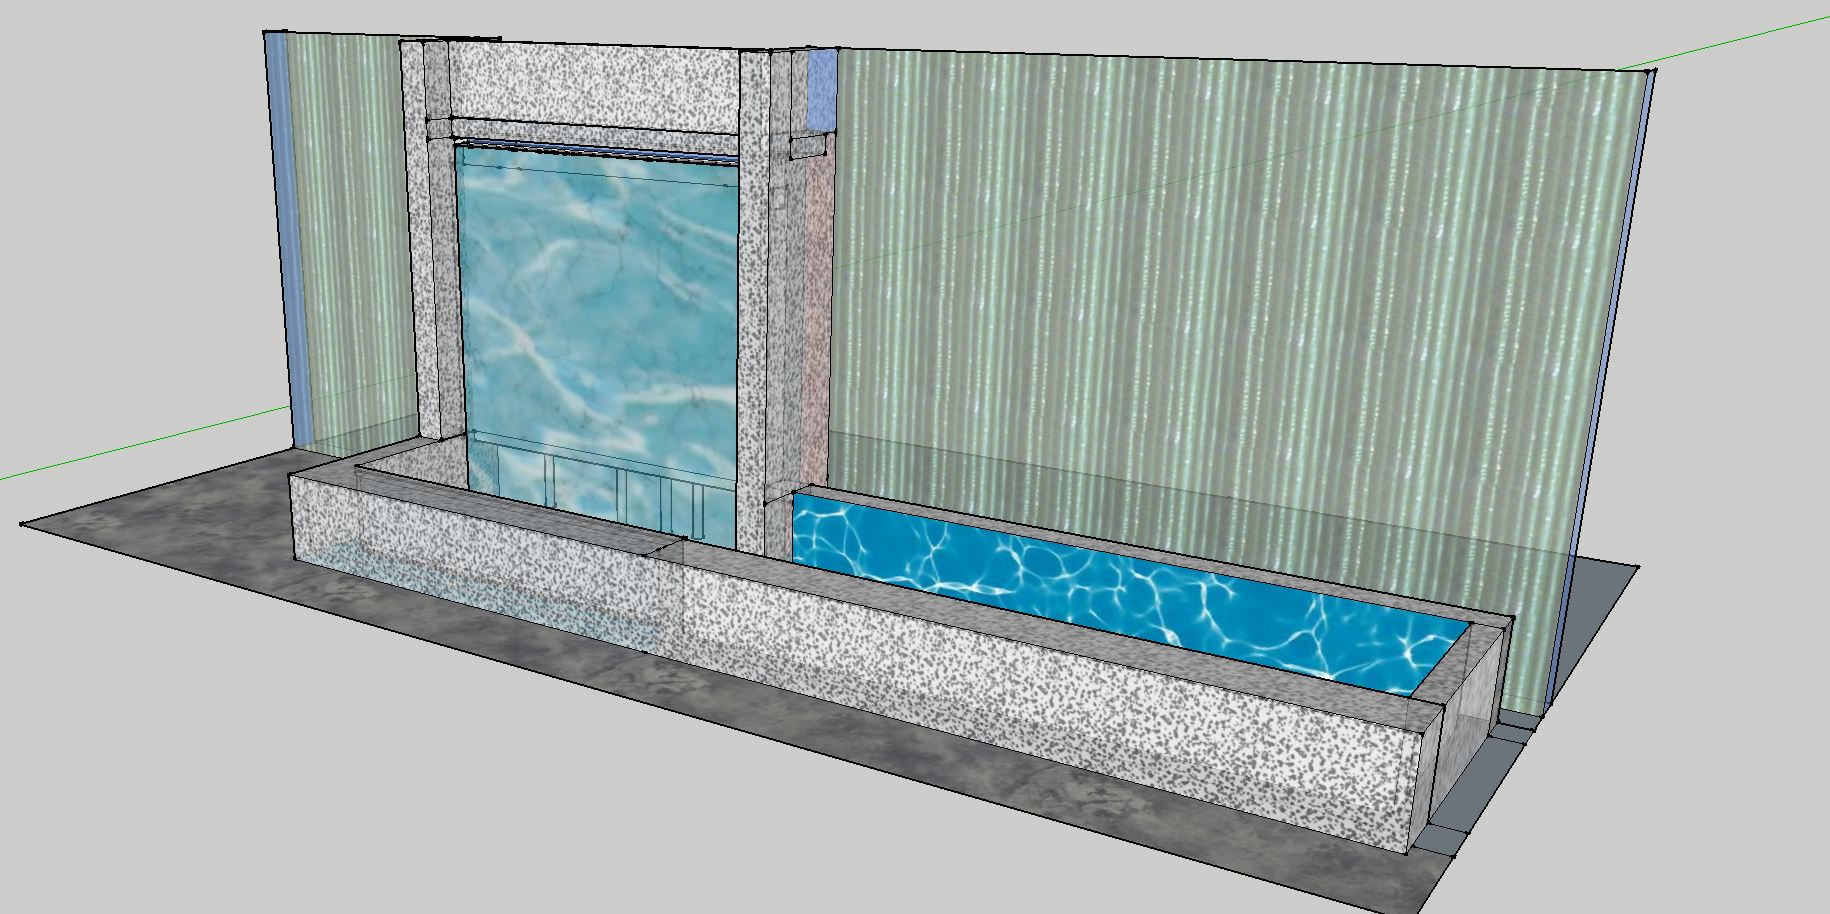 waterwall design concept